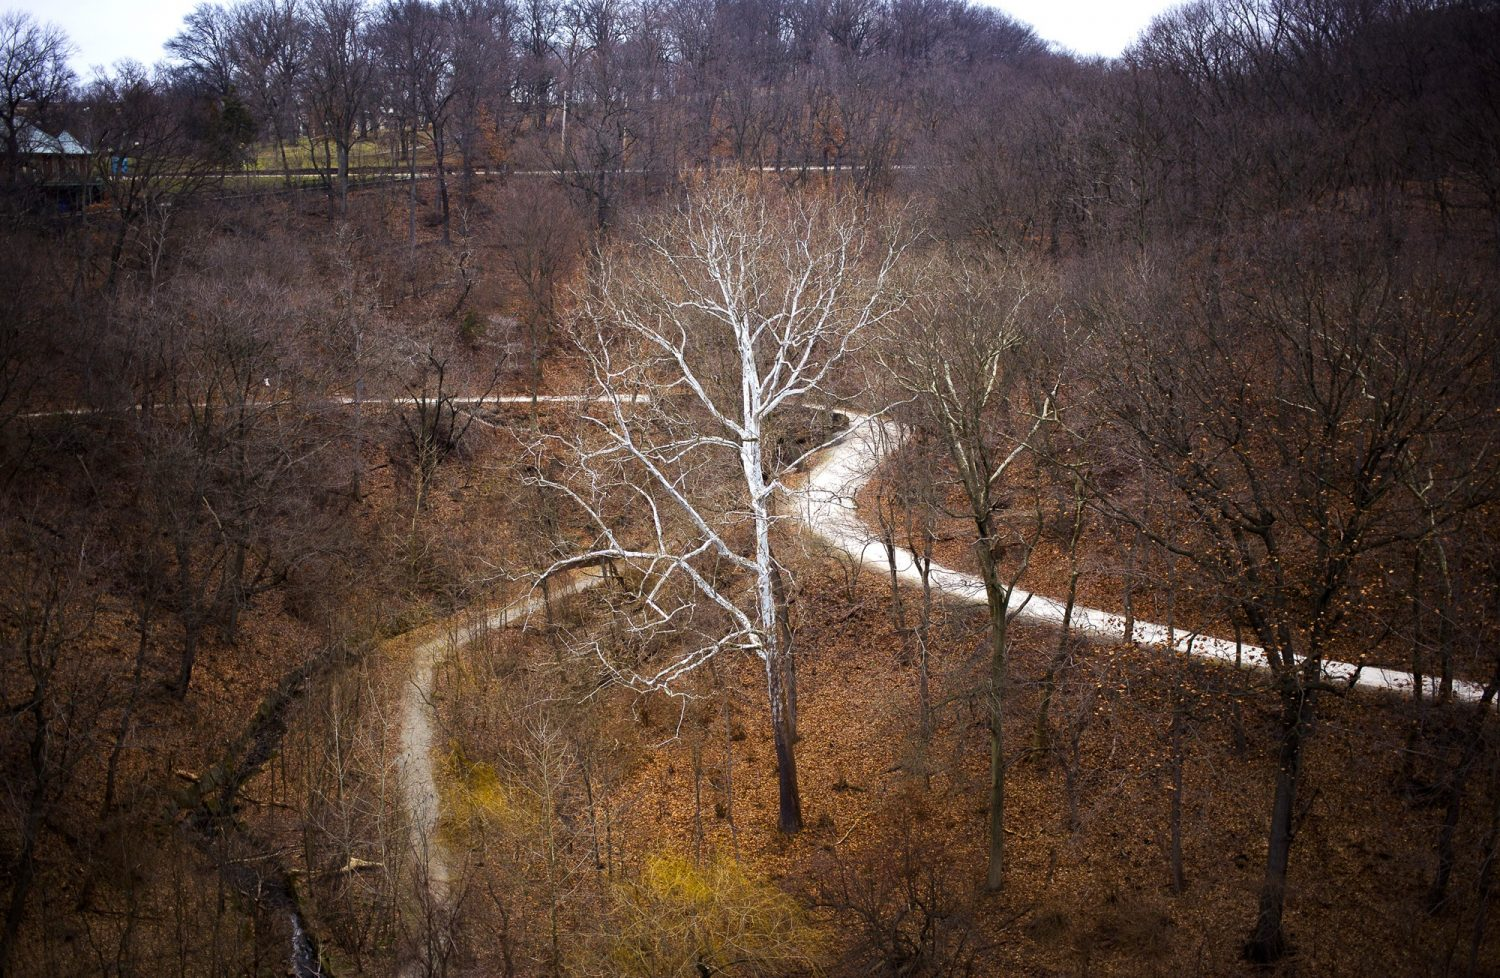 Sycamore, Panther Hollow Trail, Schenley Park, 2018